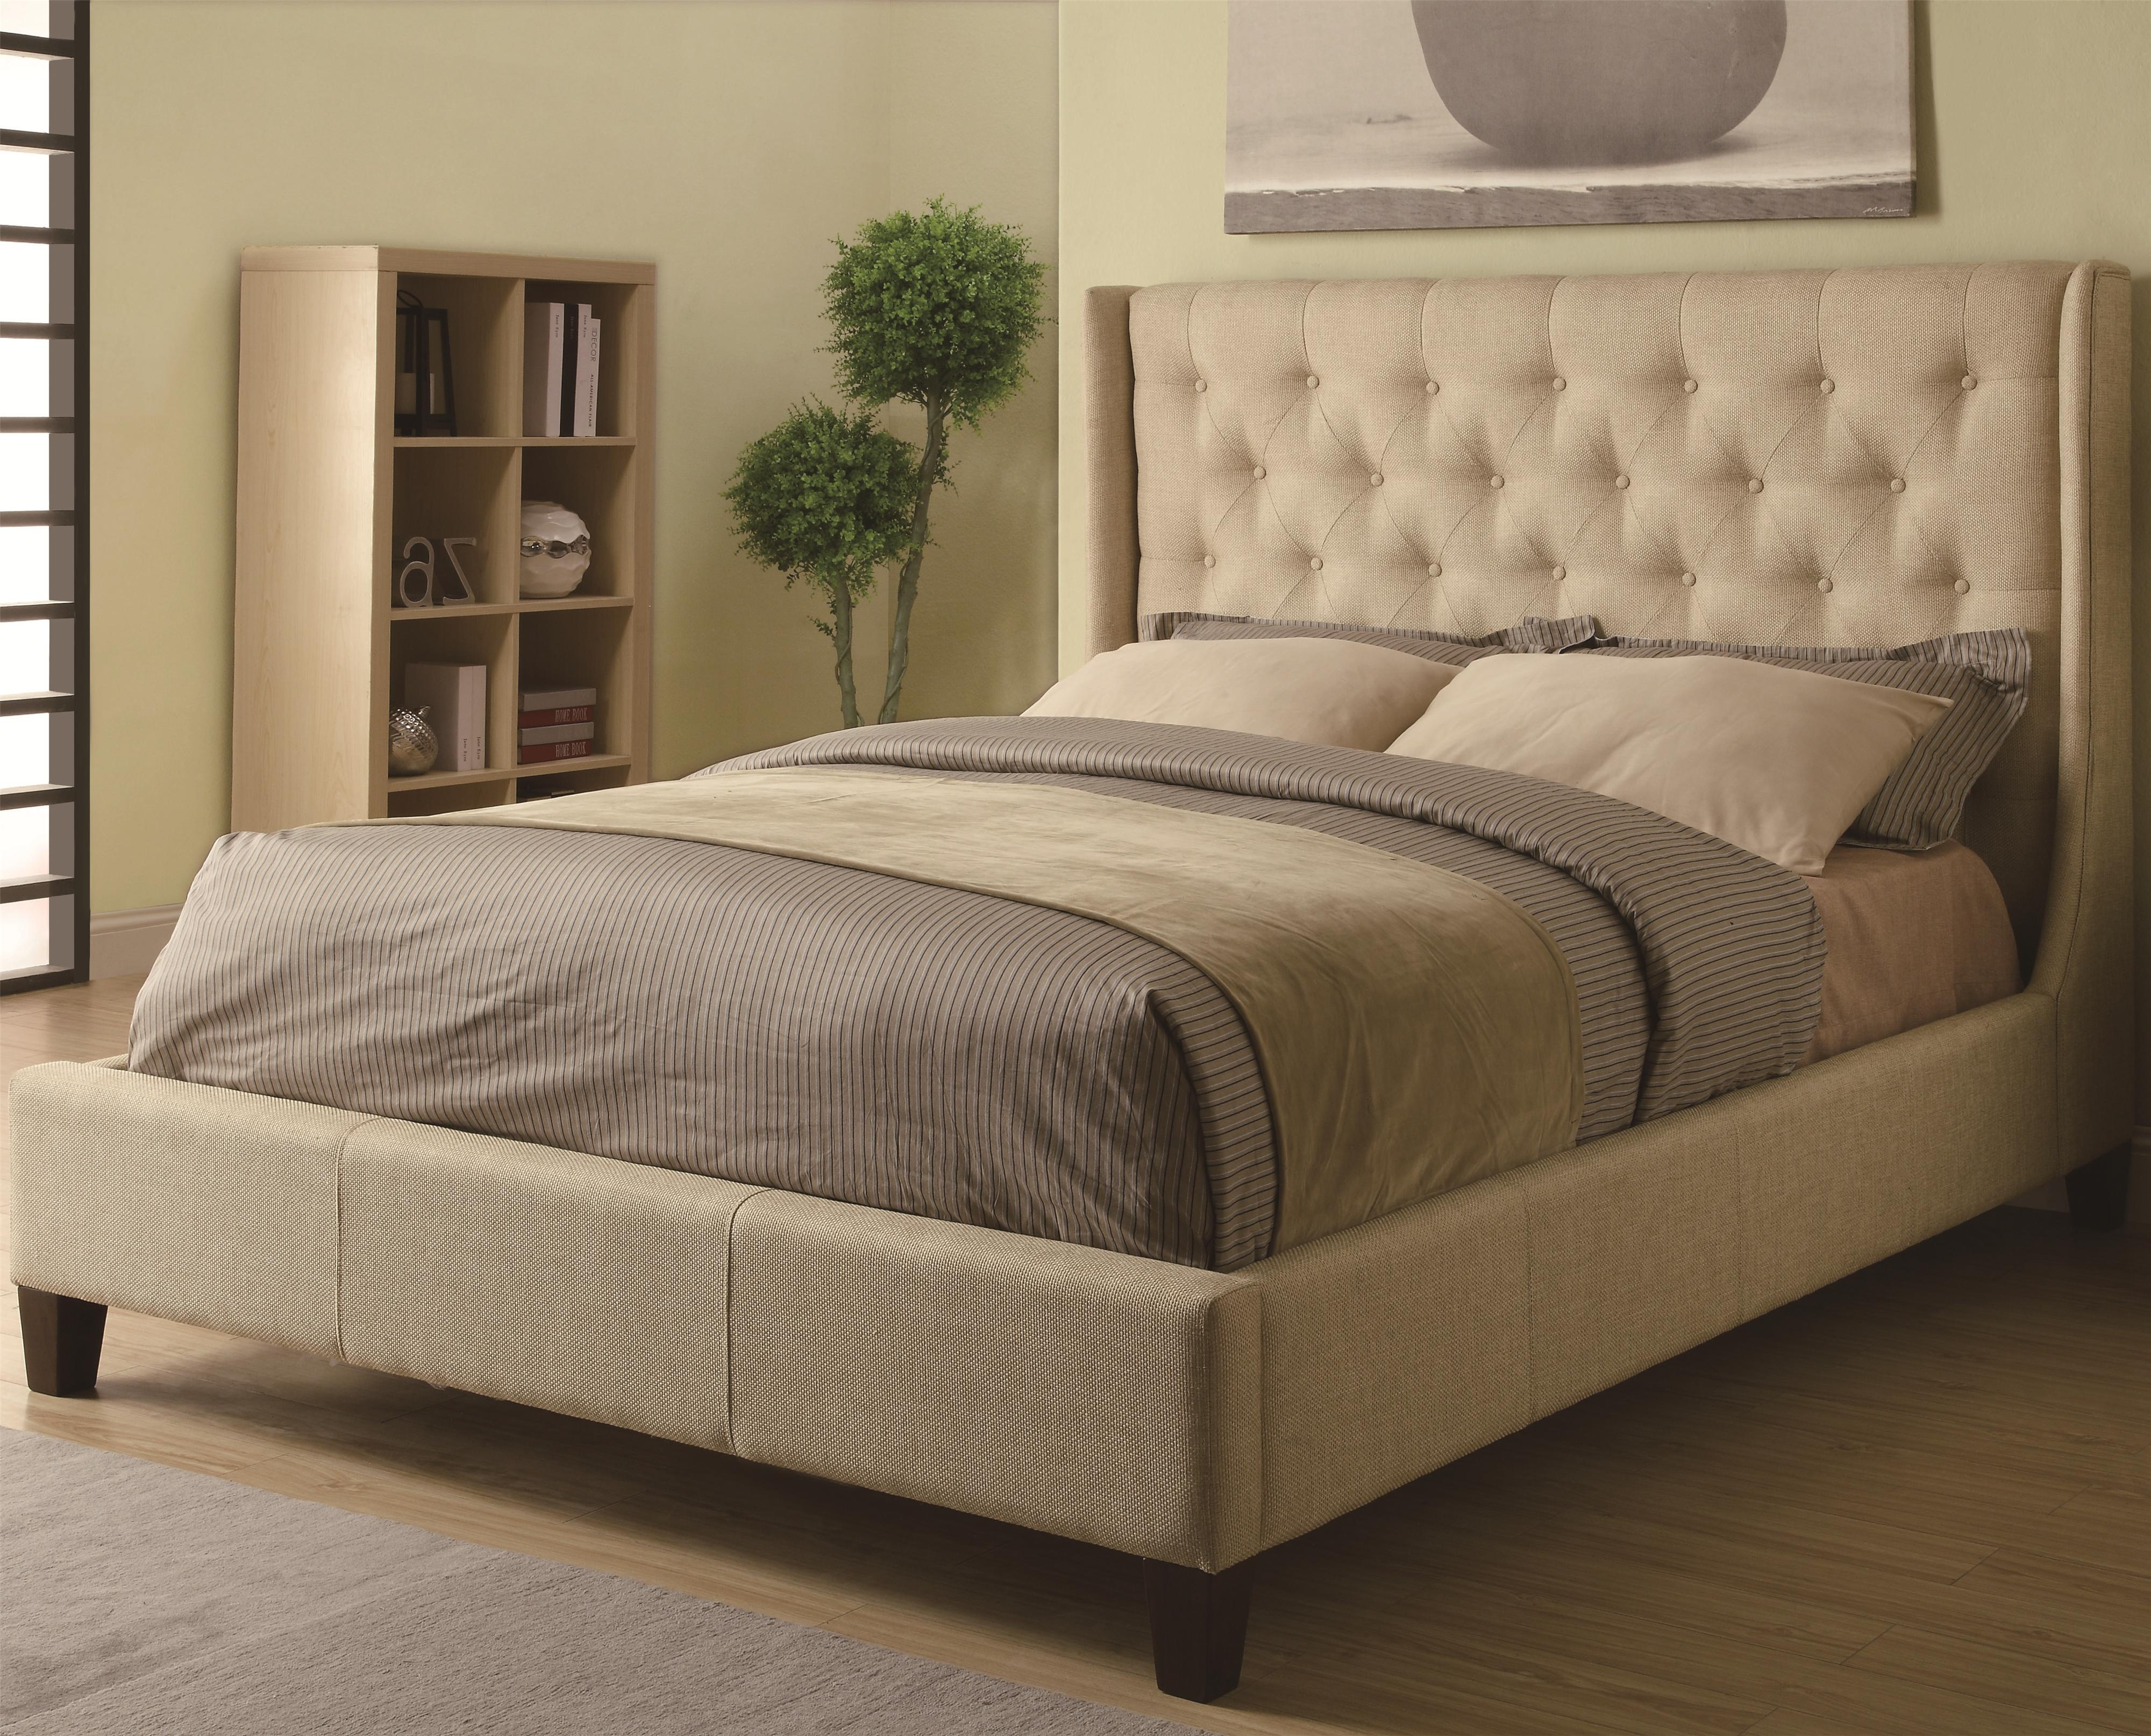 Bed Frame With Upholstered Headboard